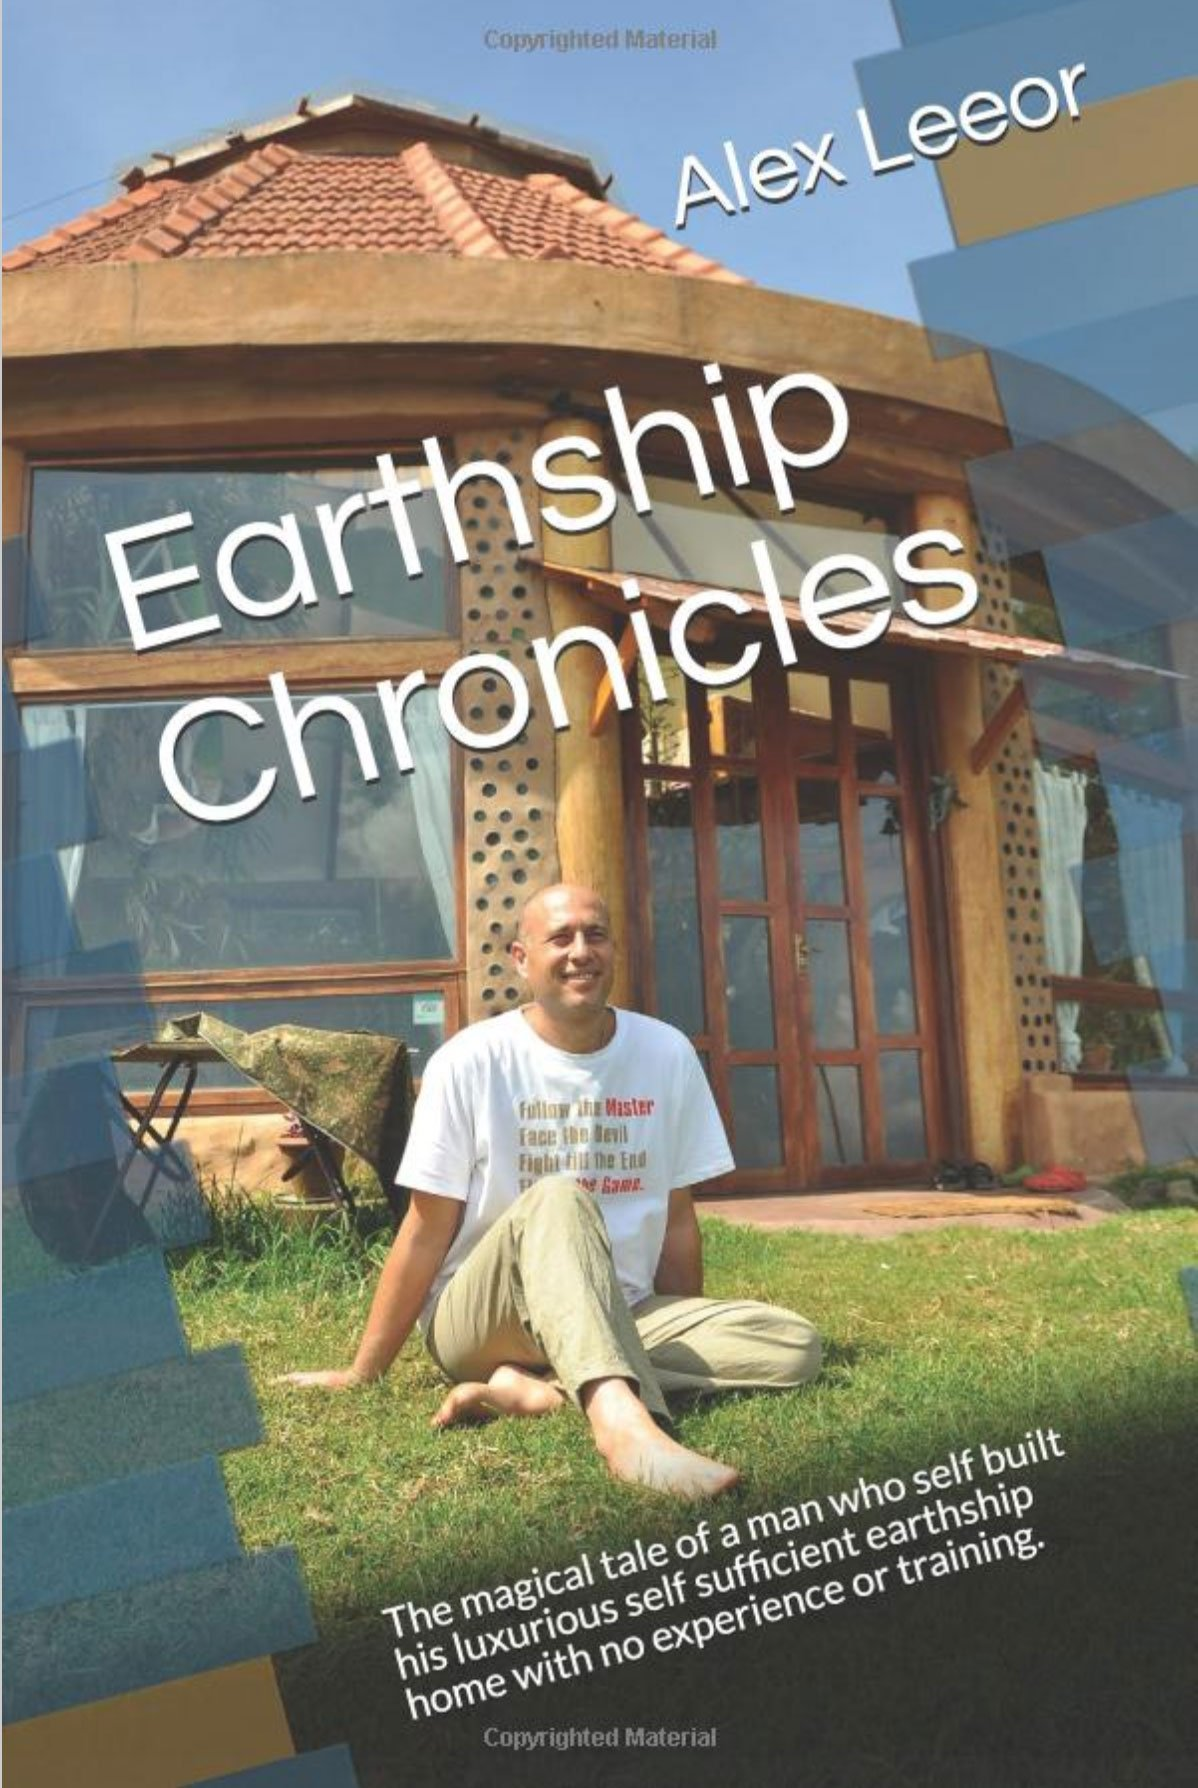 earthshipchronicles.jpg